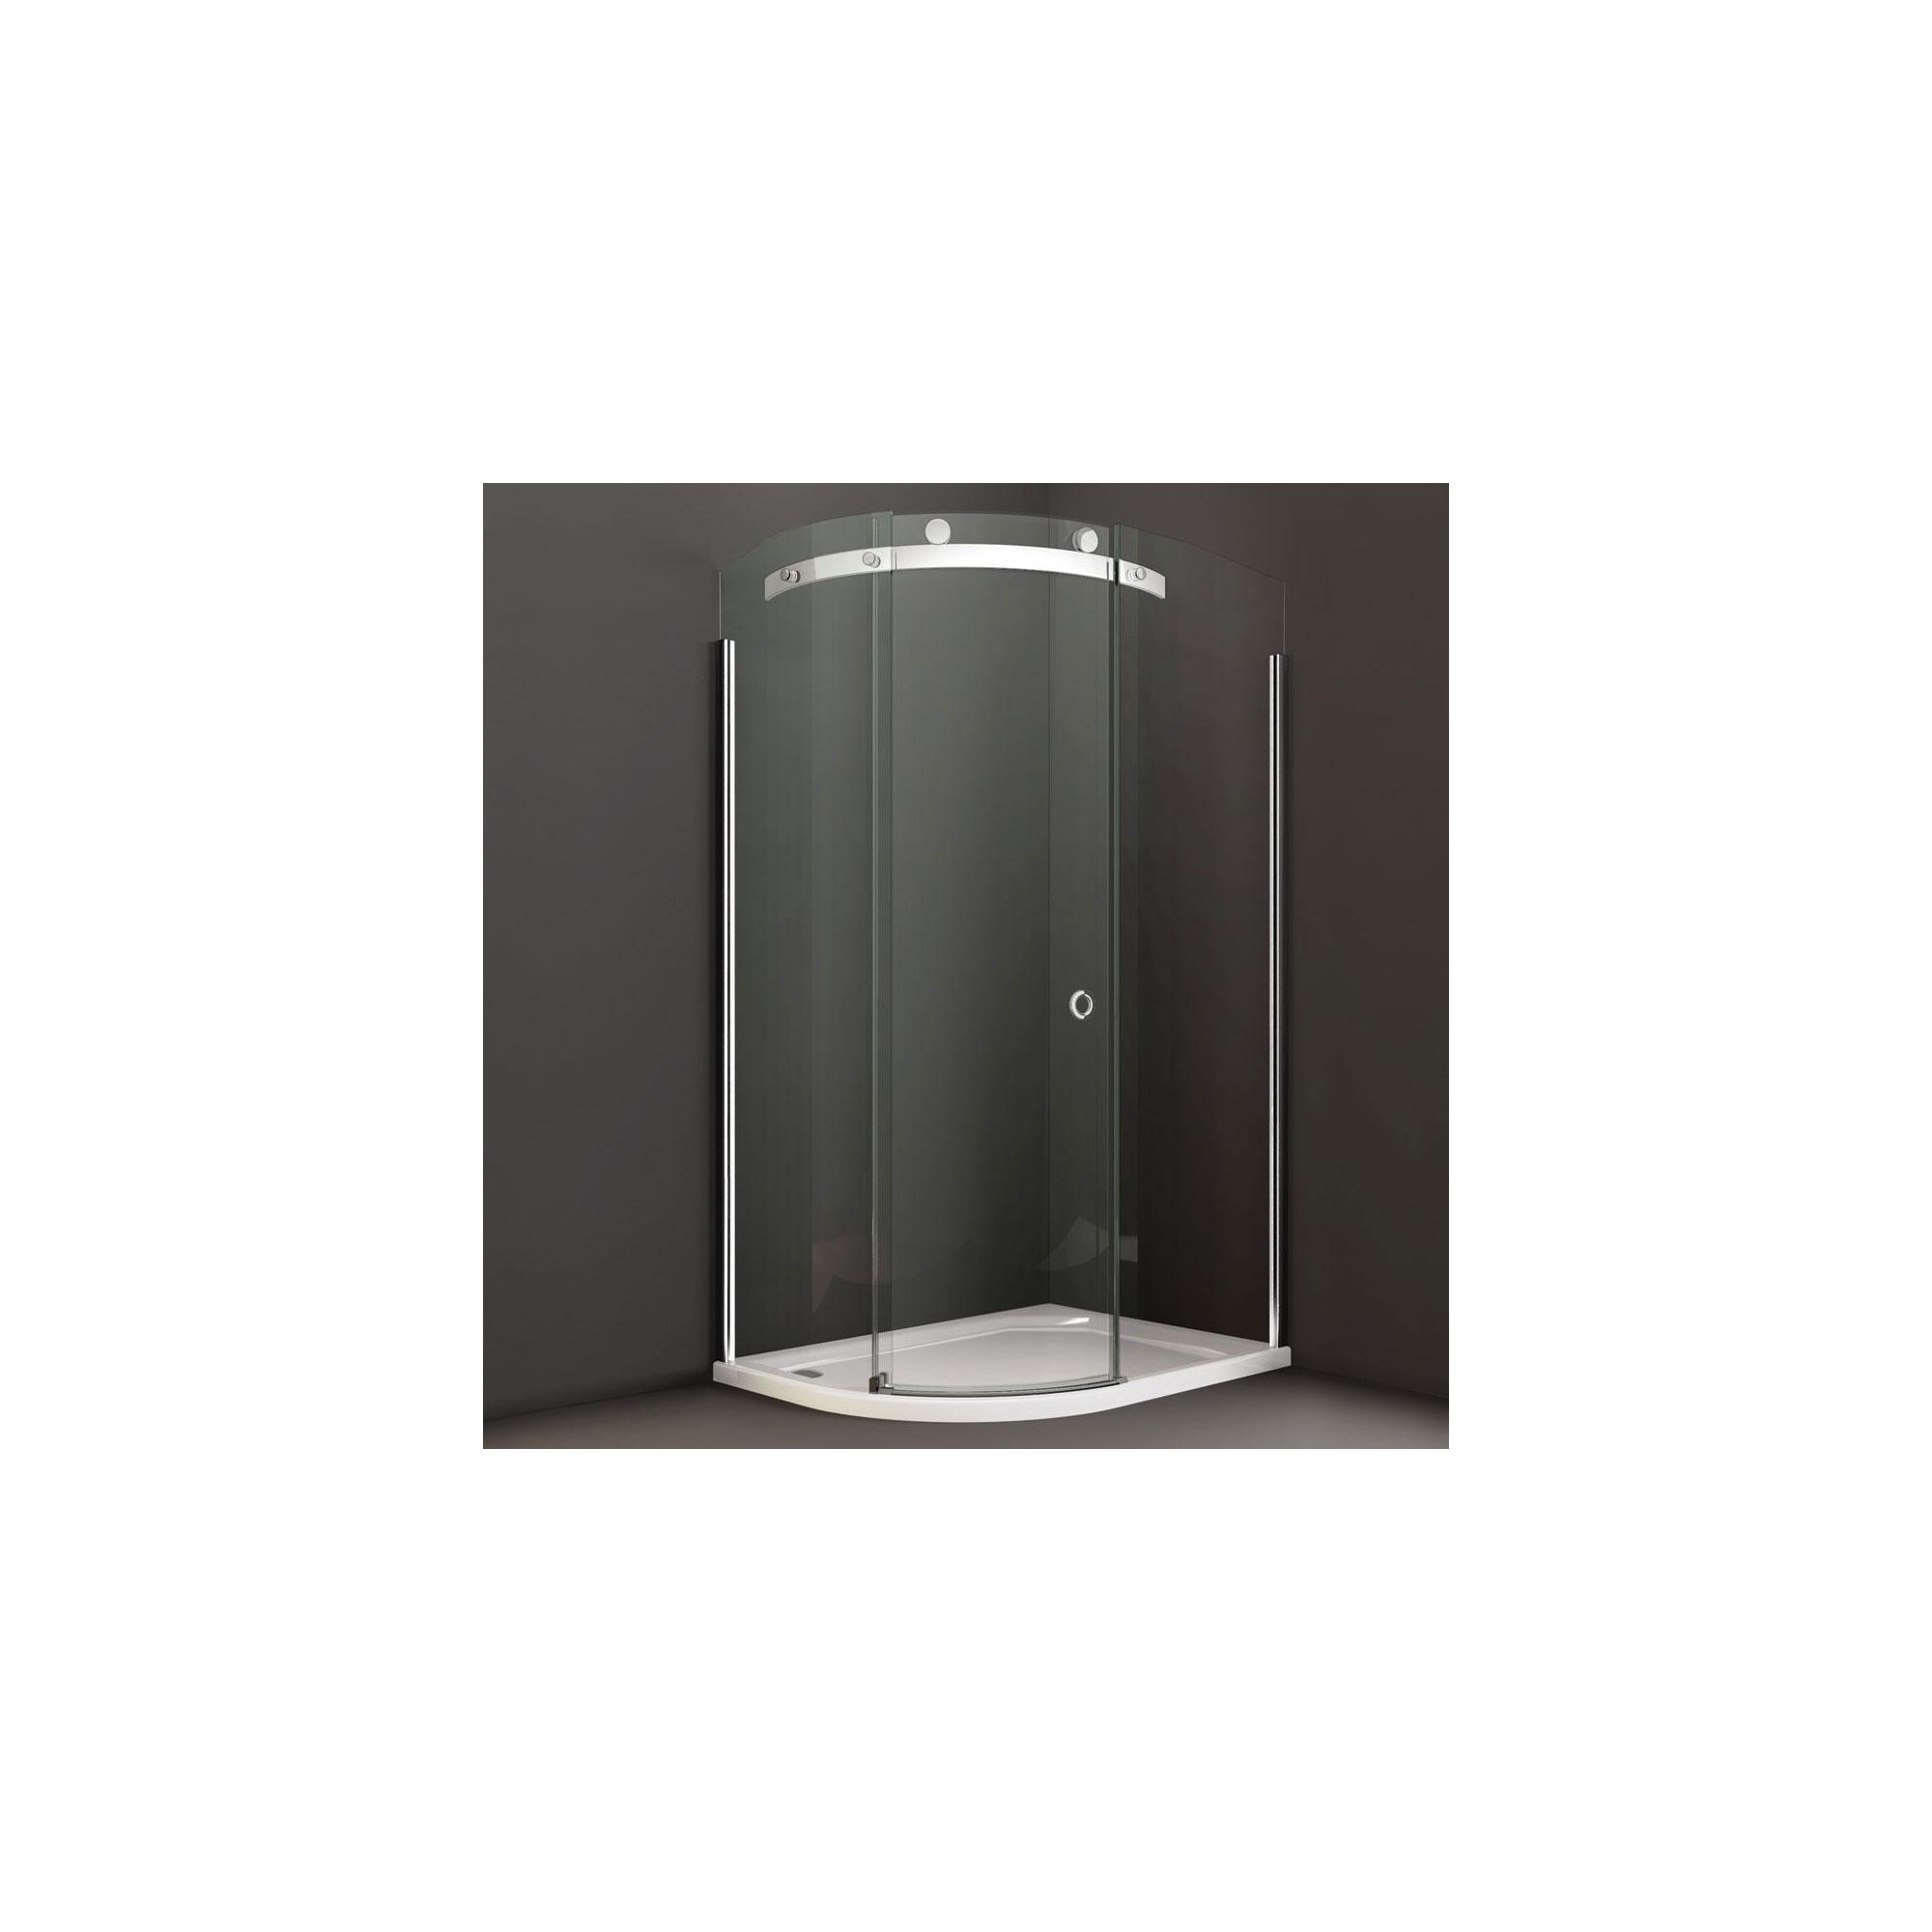 Merlyn Series 10 Offset Quadrant Shower Door, 1200mm x 900mm, 10mm Clear Glass, Left Handed at Tesco Direct